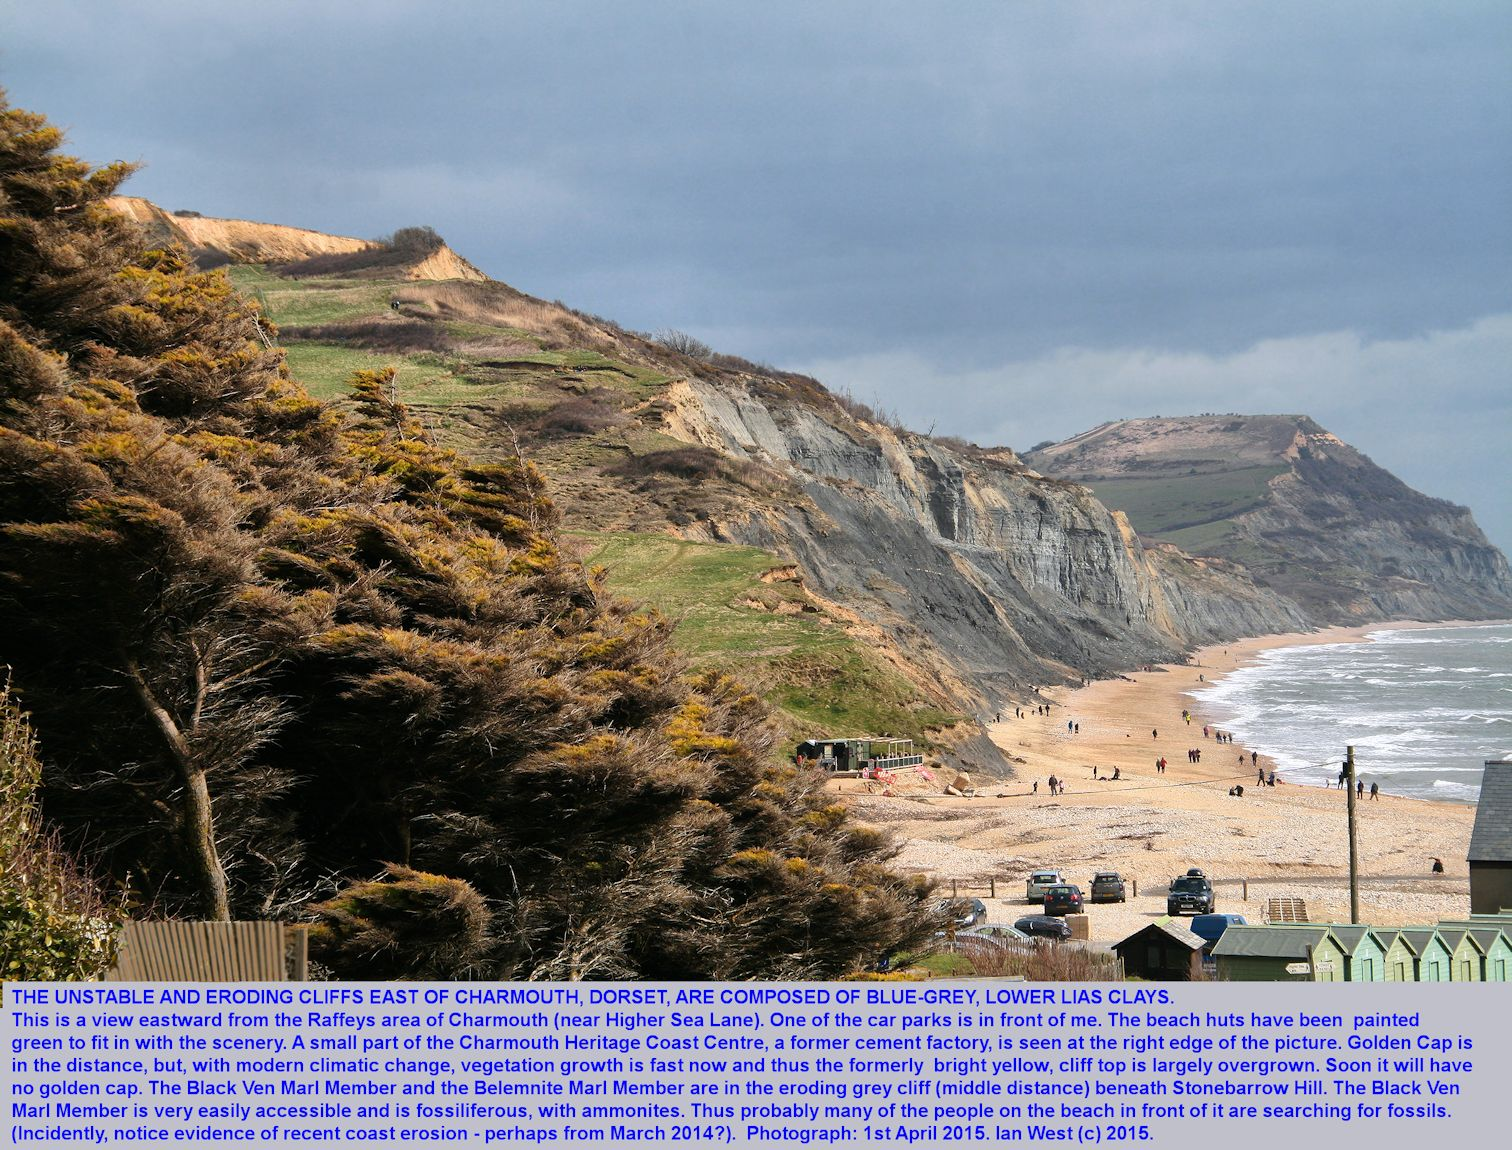 A view eastward of the Liassic clay cliffs, under Stonebarrow Hill and on to Golden Cap, east of Charmouth, Dorset, 1st April 2015, photo from Raffeys